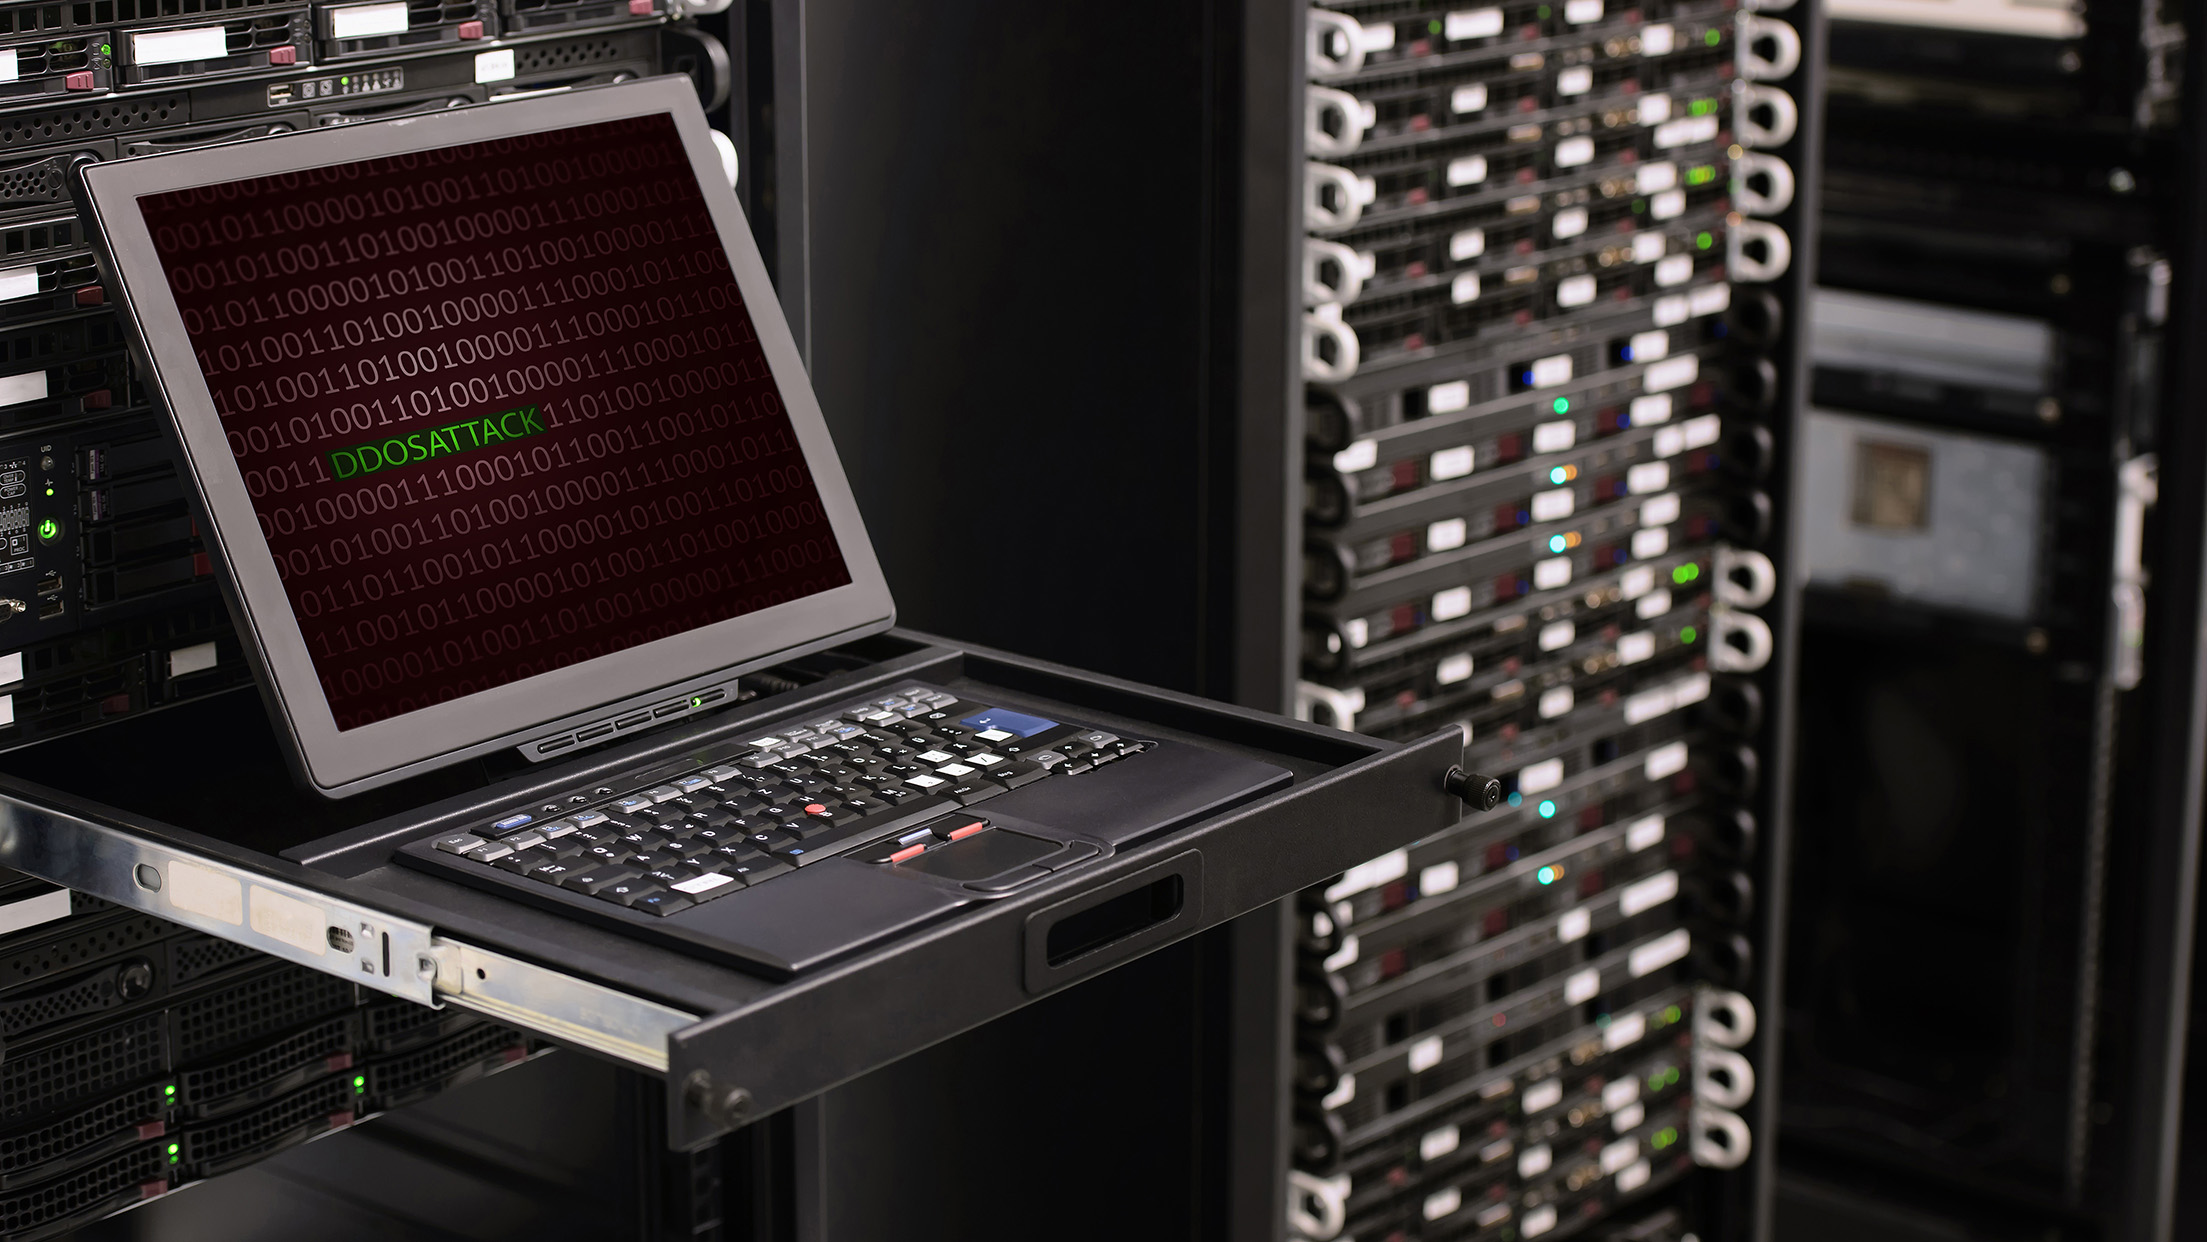 Protect next-gen network infrastructure from terabit DDoS attacks